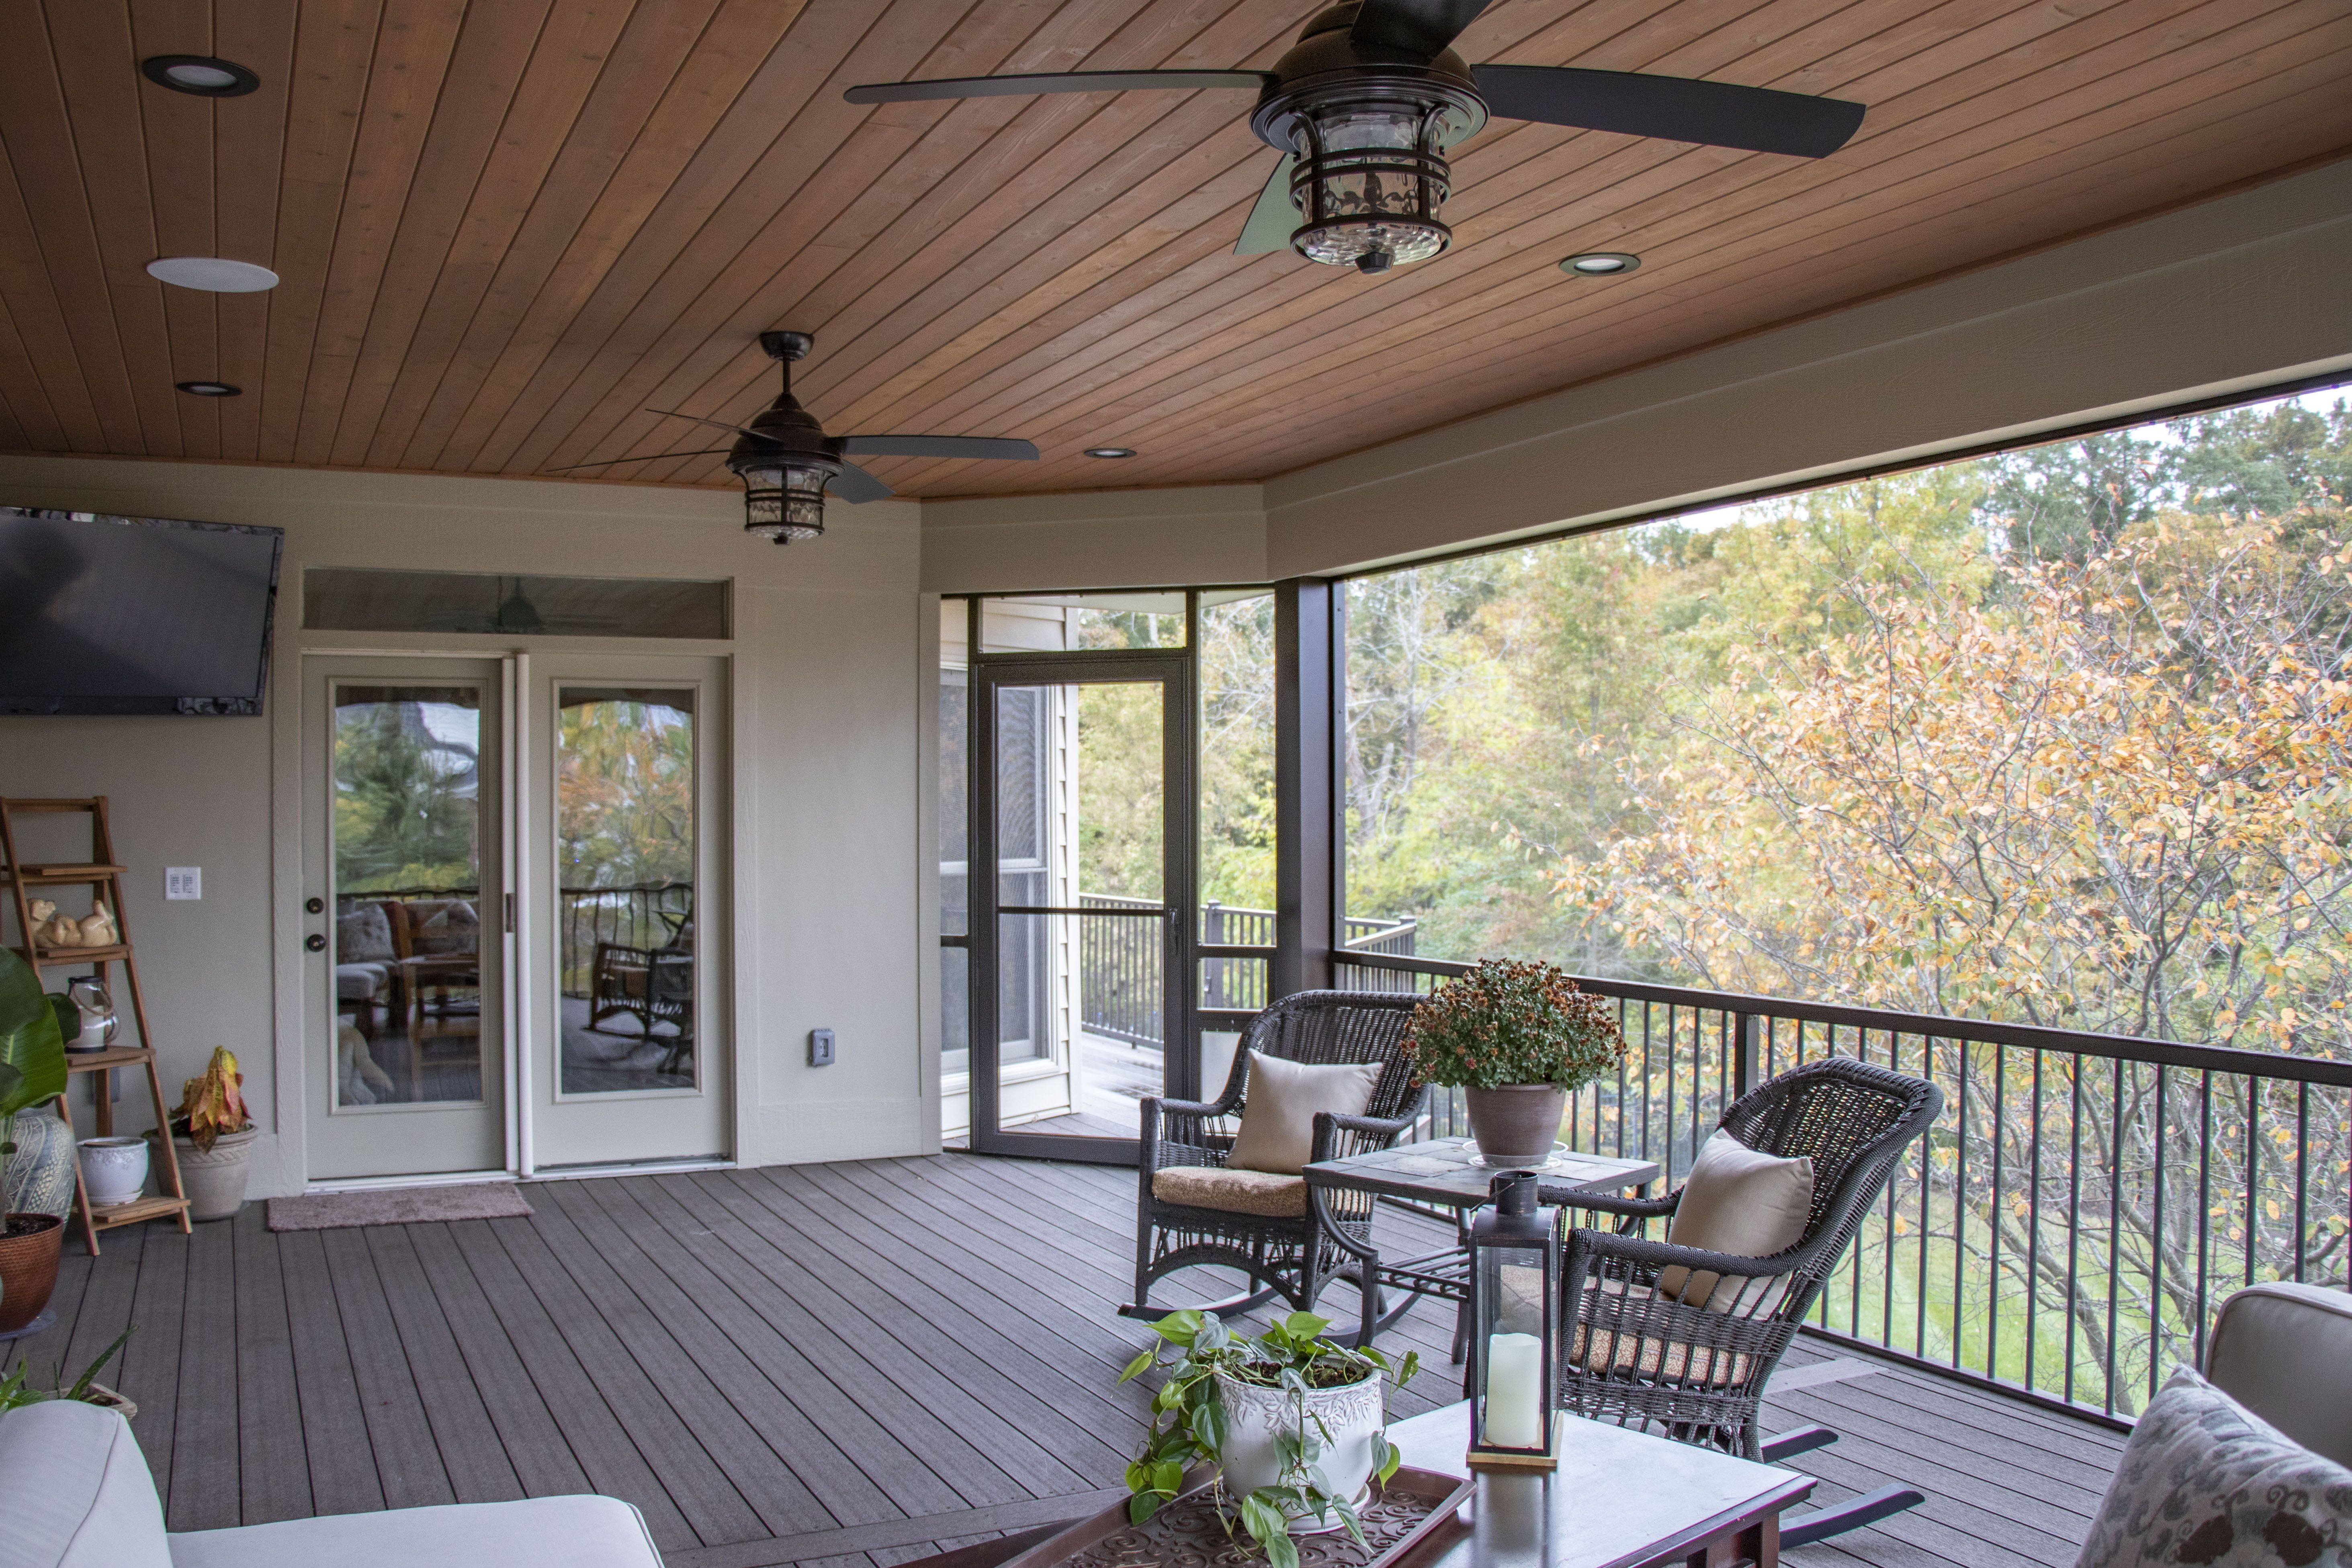 Custom screen room systems are a great option for outdoor ... on Outdoor Living Space Company id=17417